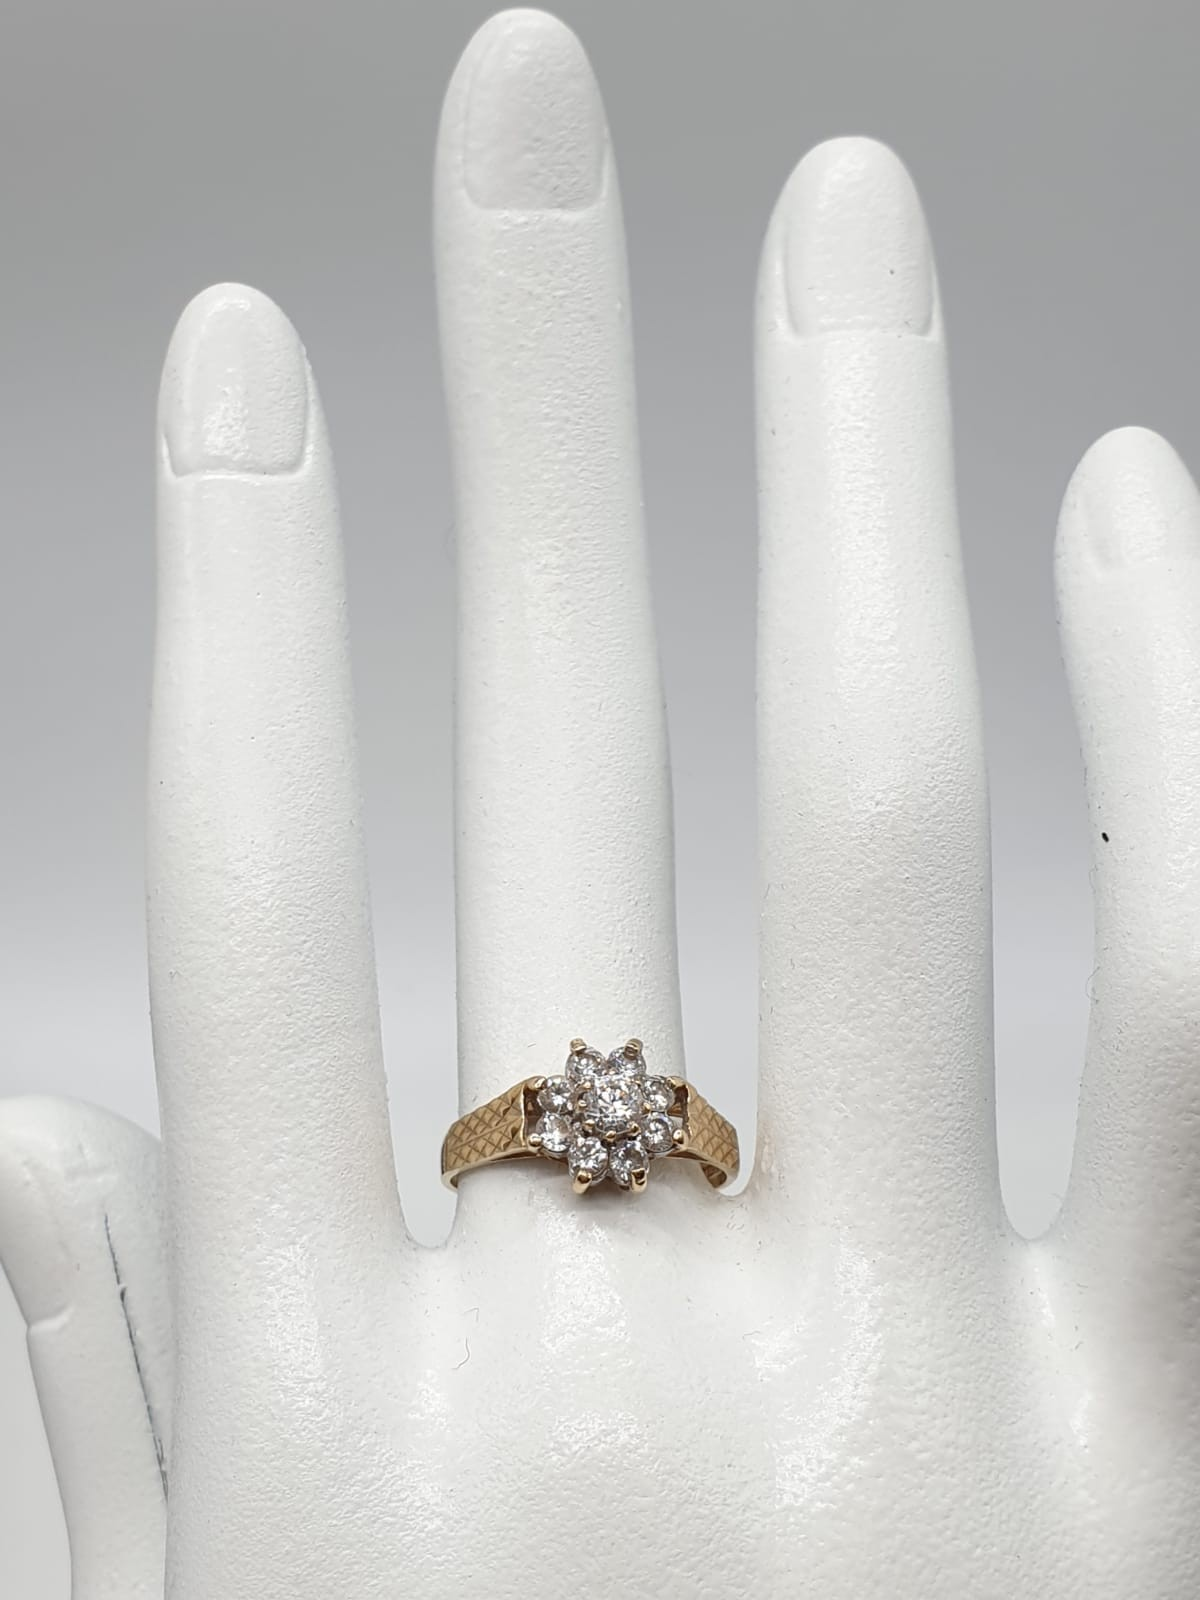 9ct Gold ring having cubic zirconia cluster to top in claw mounts and chased design work to - Image 2 of 7